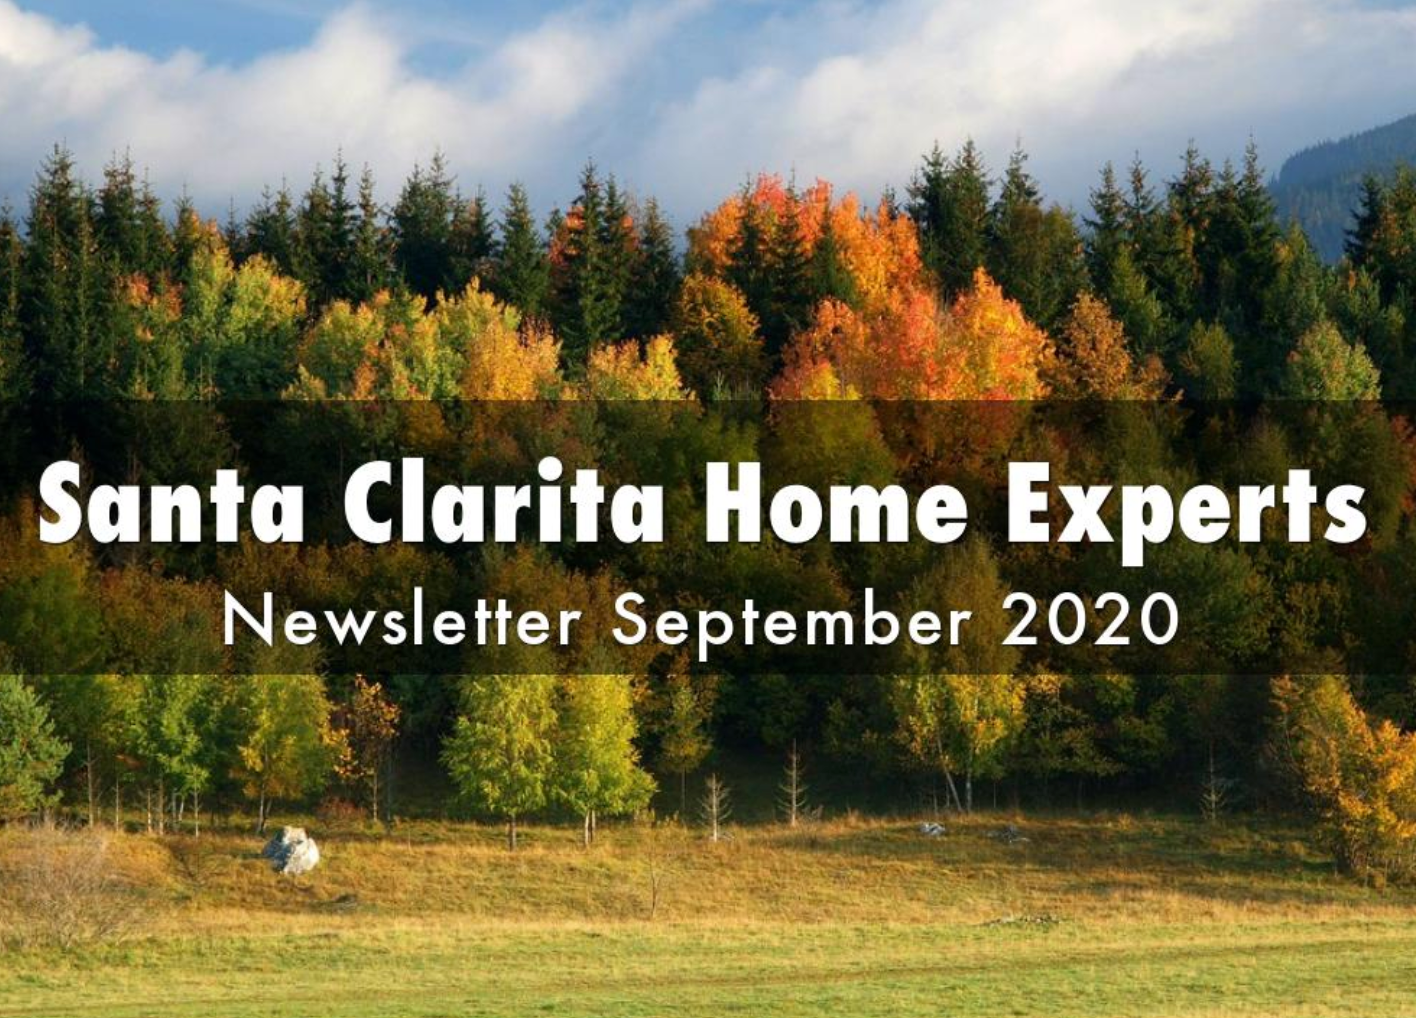 Santa Clarita real estate newsletter for September 2020 by the experts